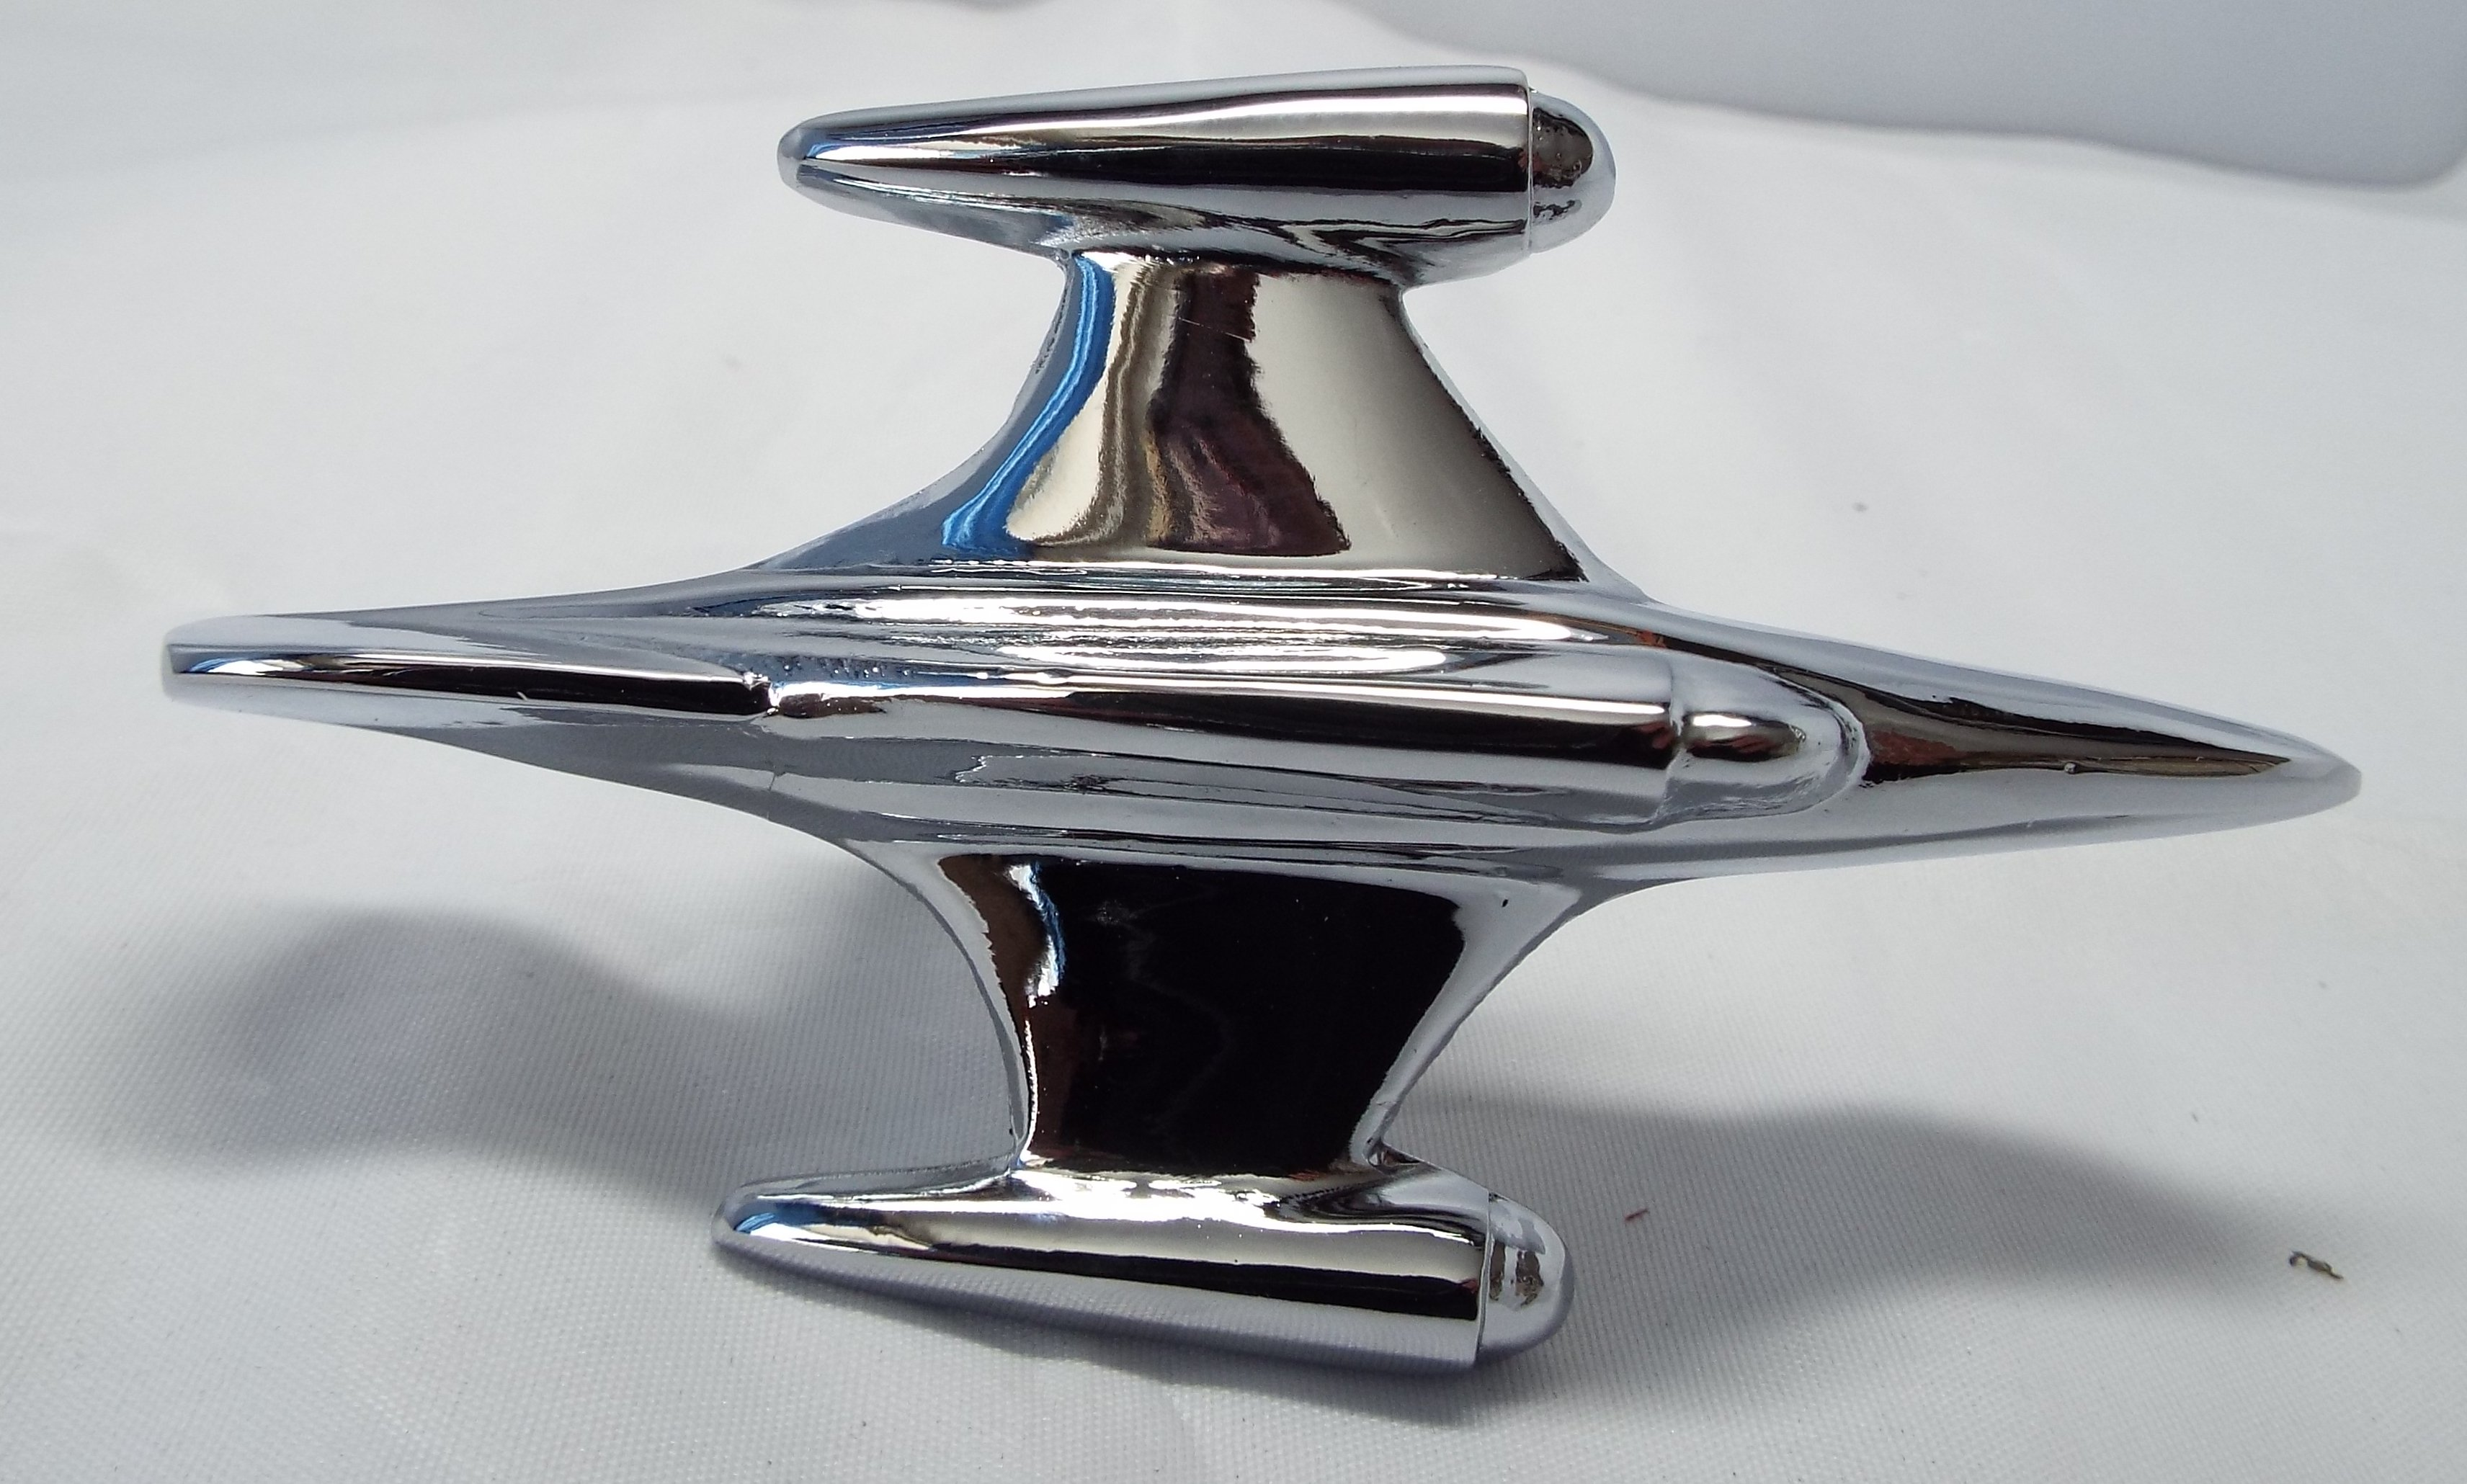 Small Jet Plane Bonnet Mascot -Chrome Plated